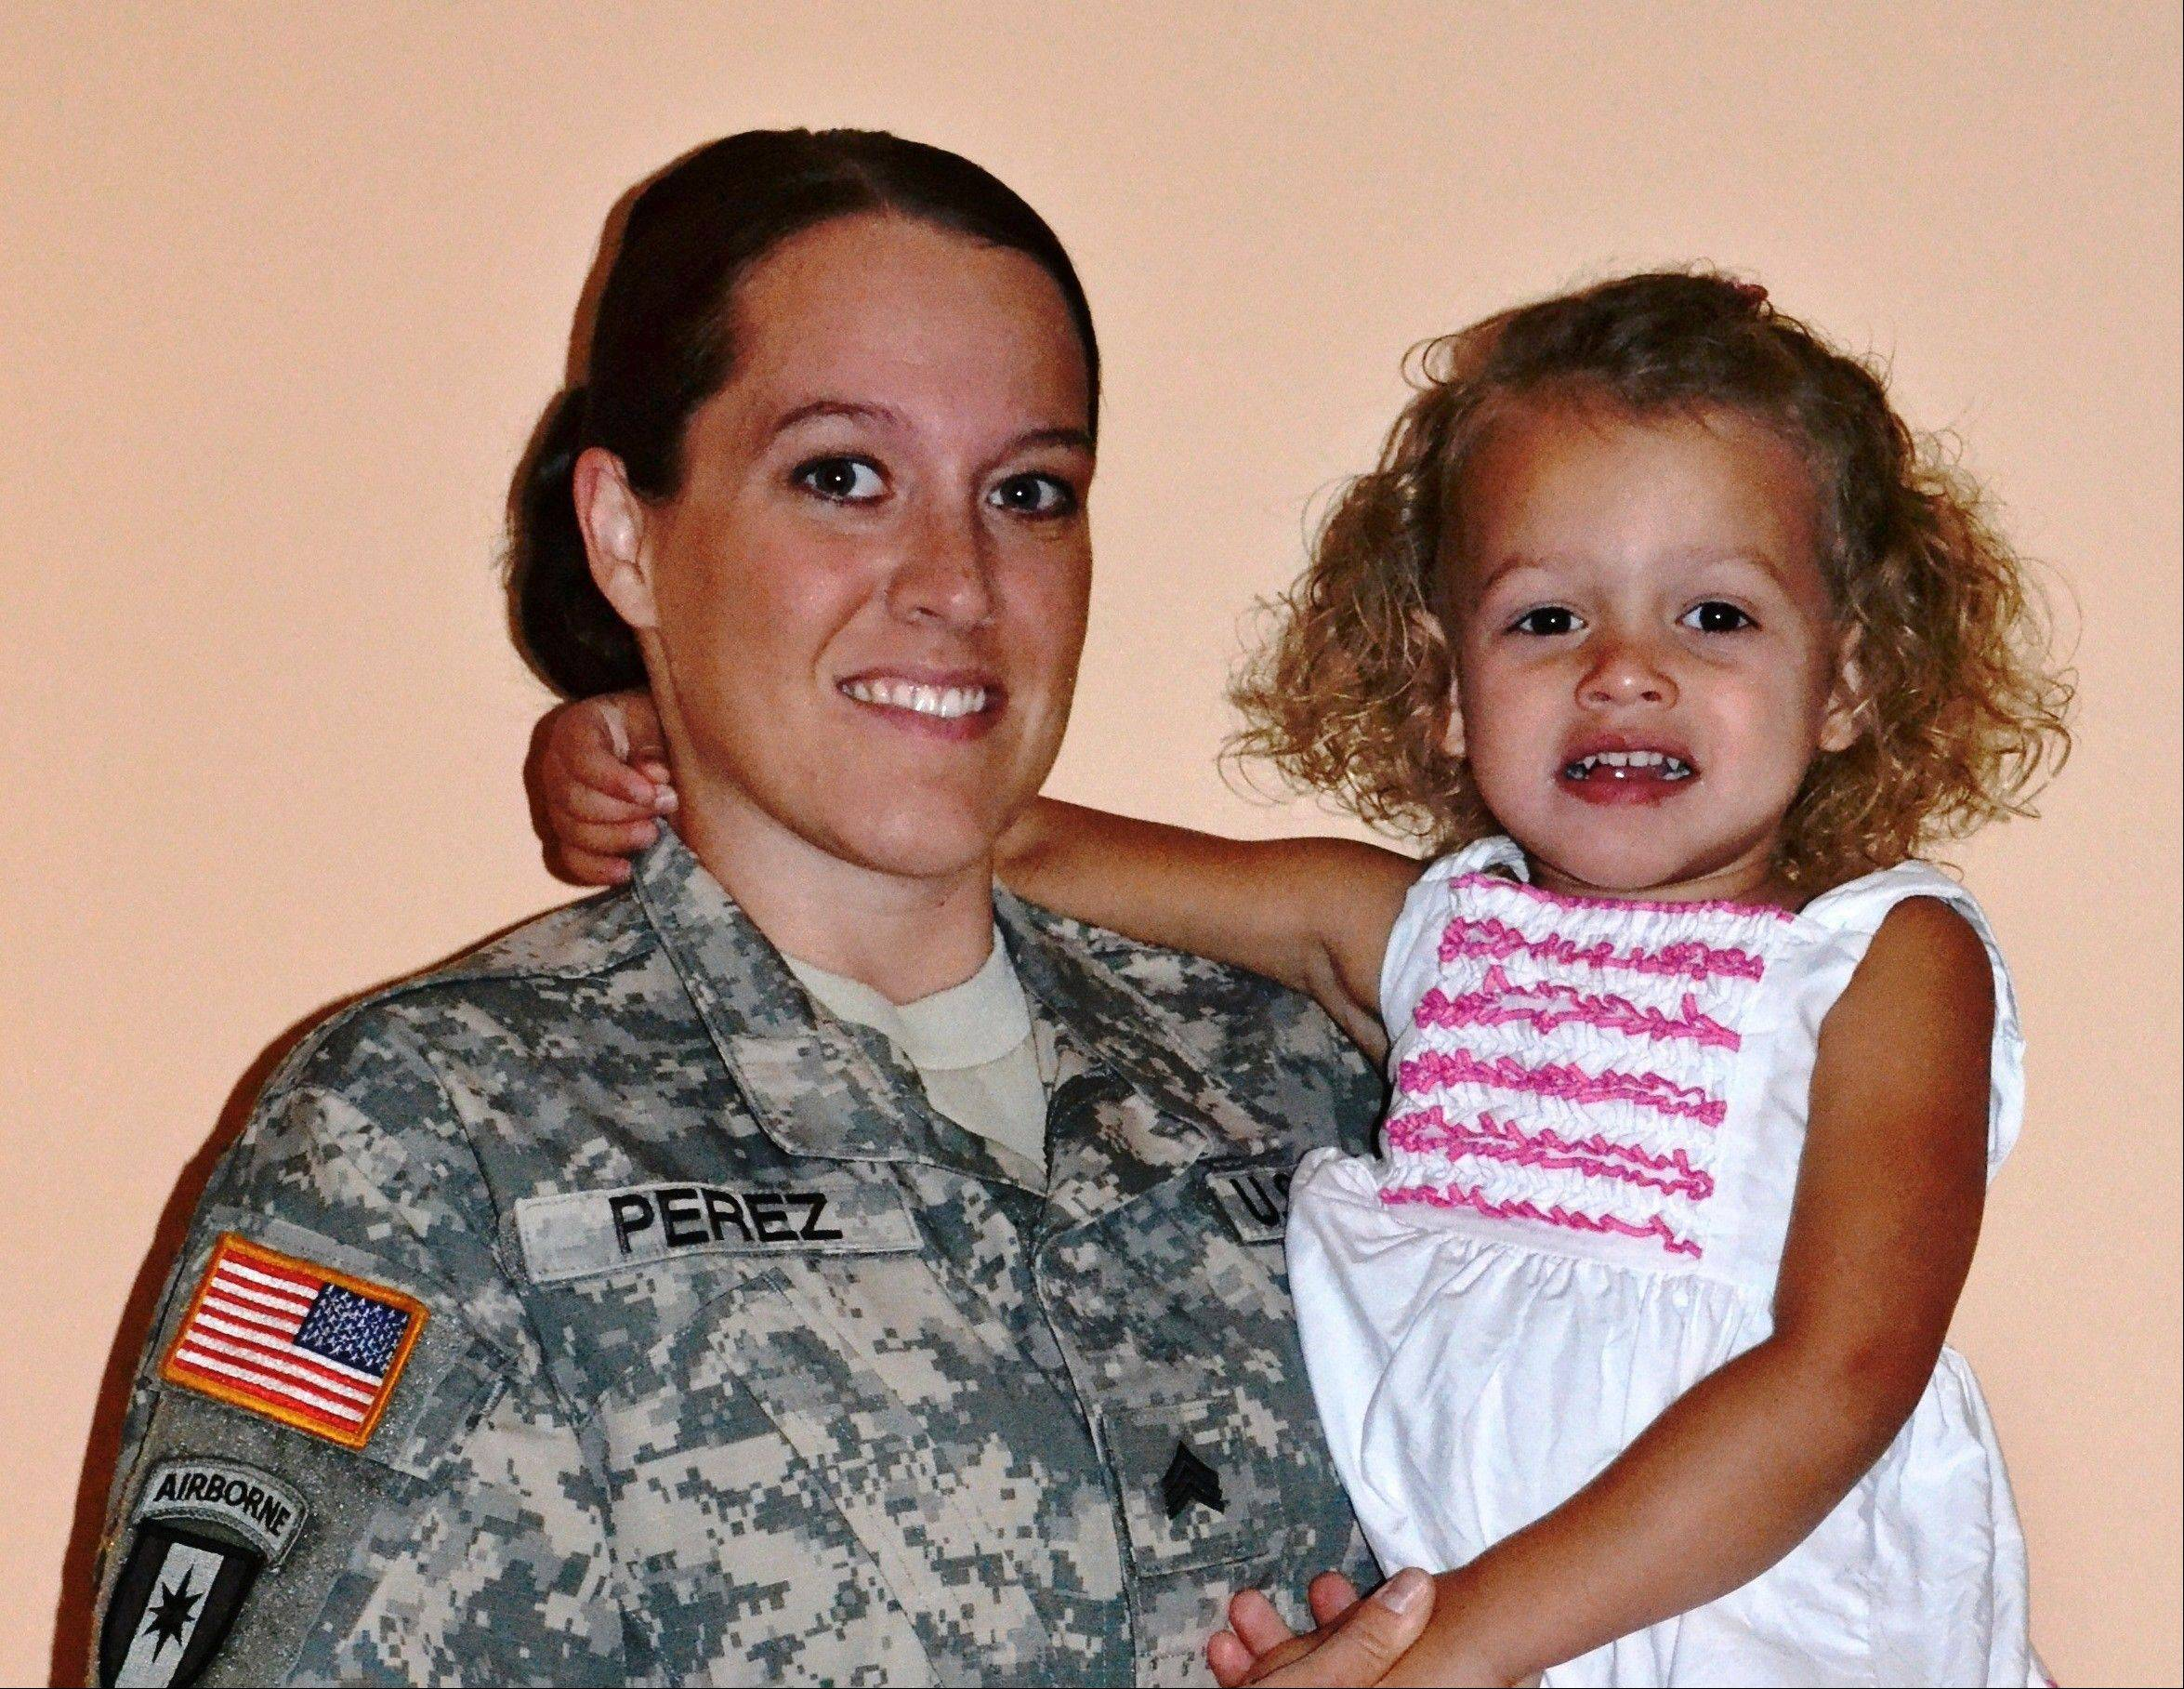 In choosing to serve her country in uniform, Hayleigh Lynn Perez, shown here with daughter Calleigh, knowingly accepted a nomadic life. Now the former Army sergeant says she and thousands of other veterans trying to get a higher education are being penalized for that enforced rootlessness.